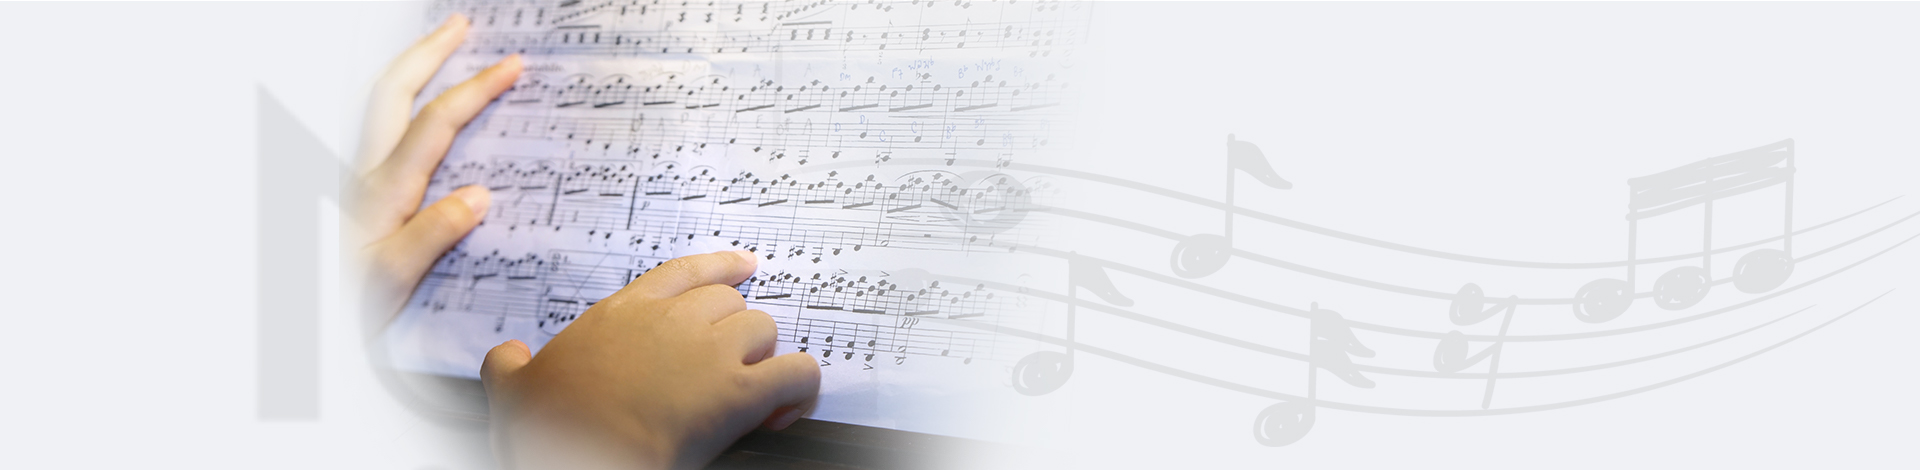 Learning the language of music